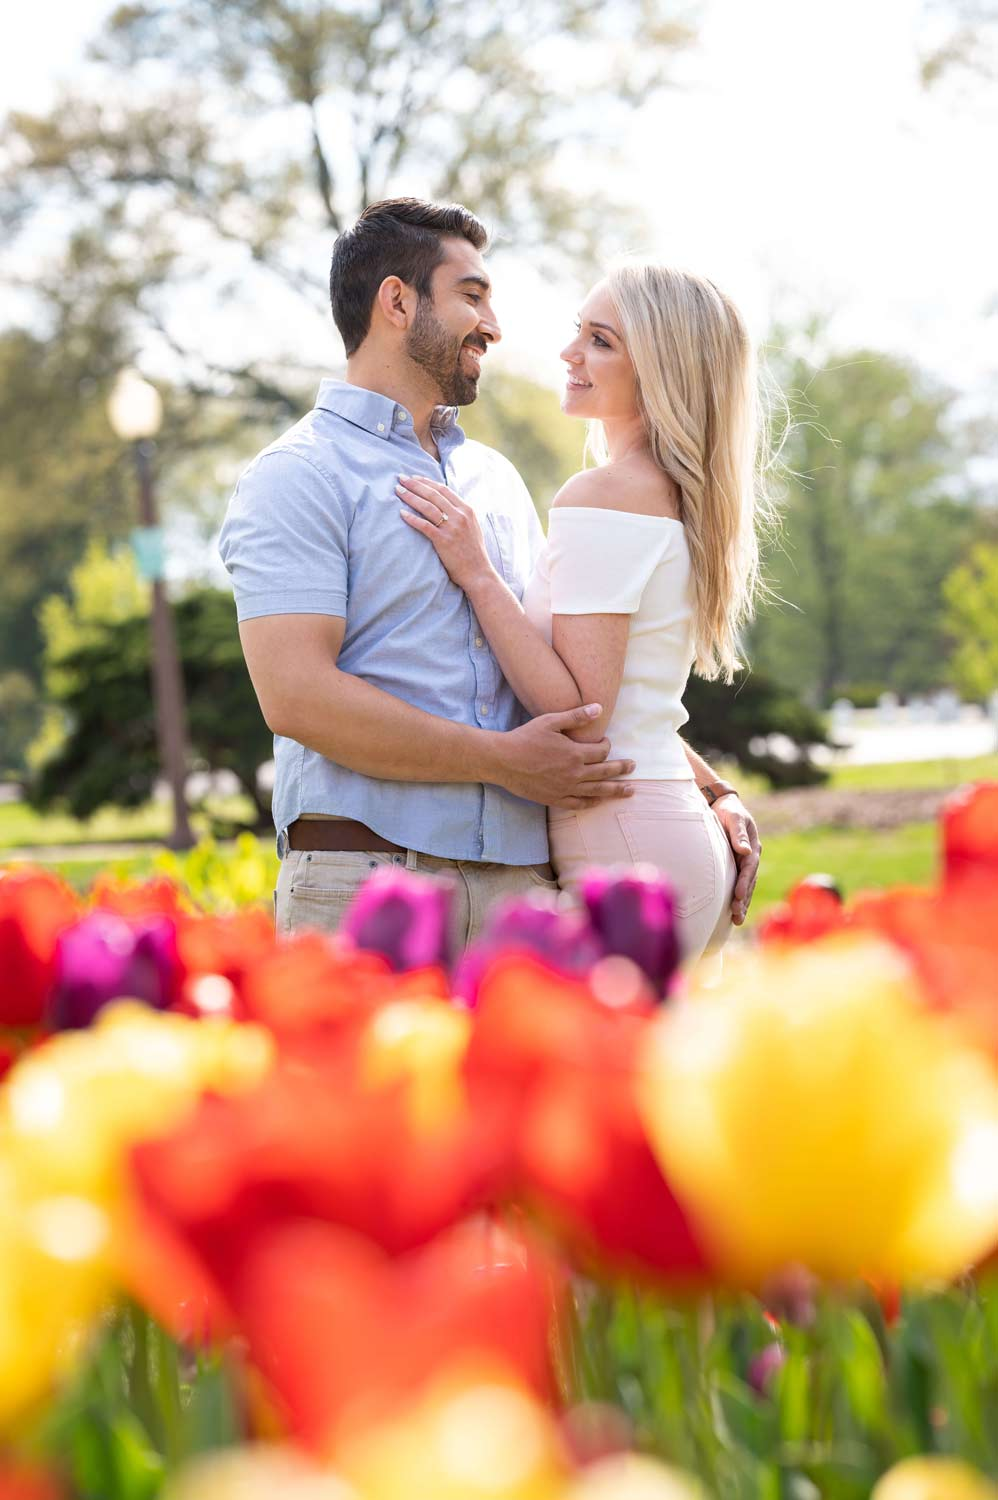 engagement photo with Tulips at Tower Grove Park in St. Louis